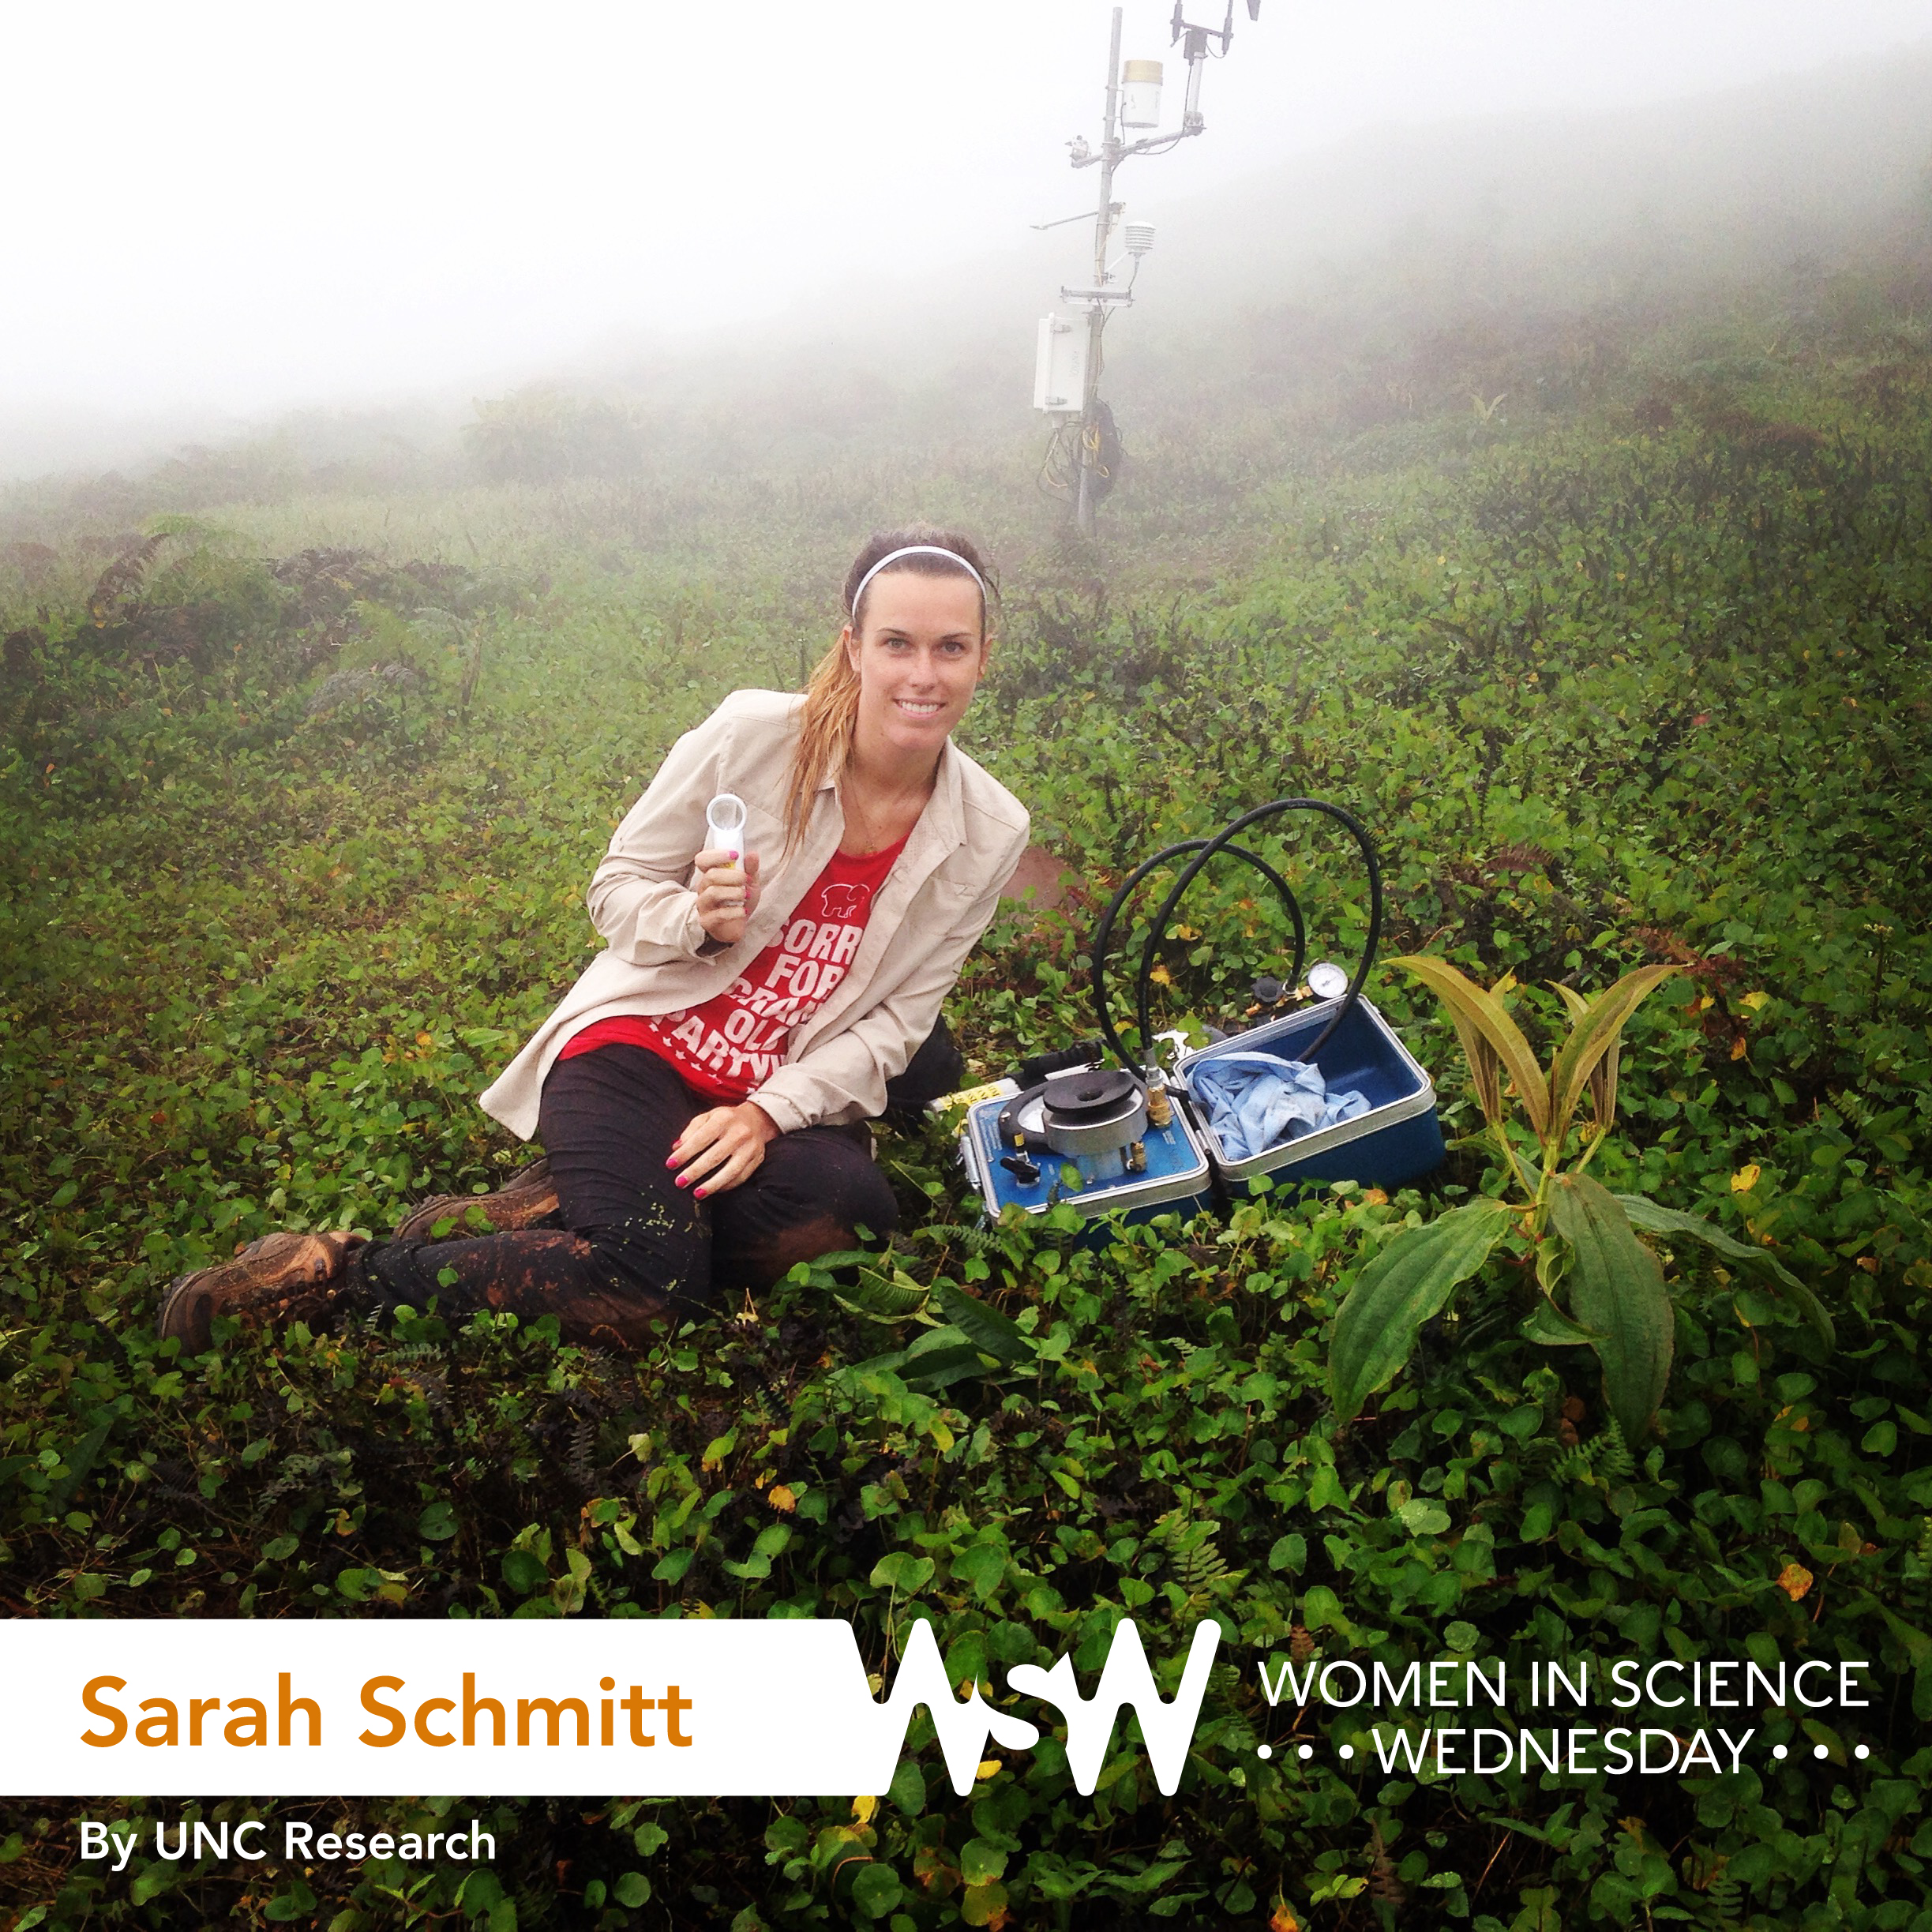 Sarah Schmitt sits in a field with her research equipment, smiling at the camera.